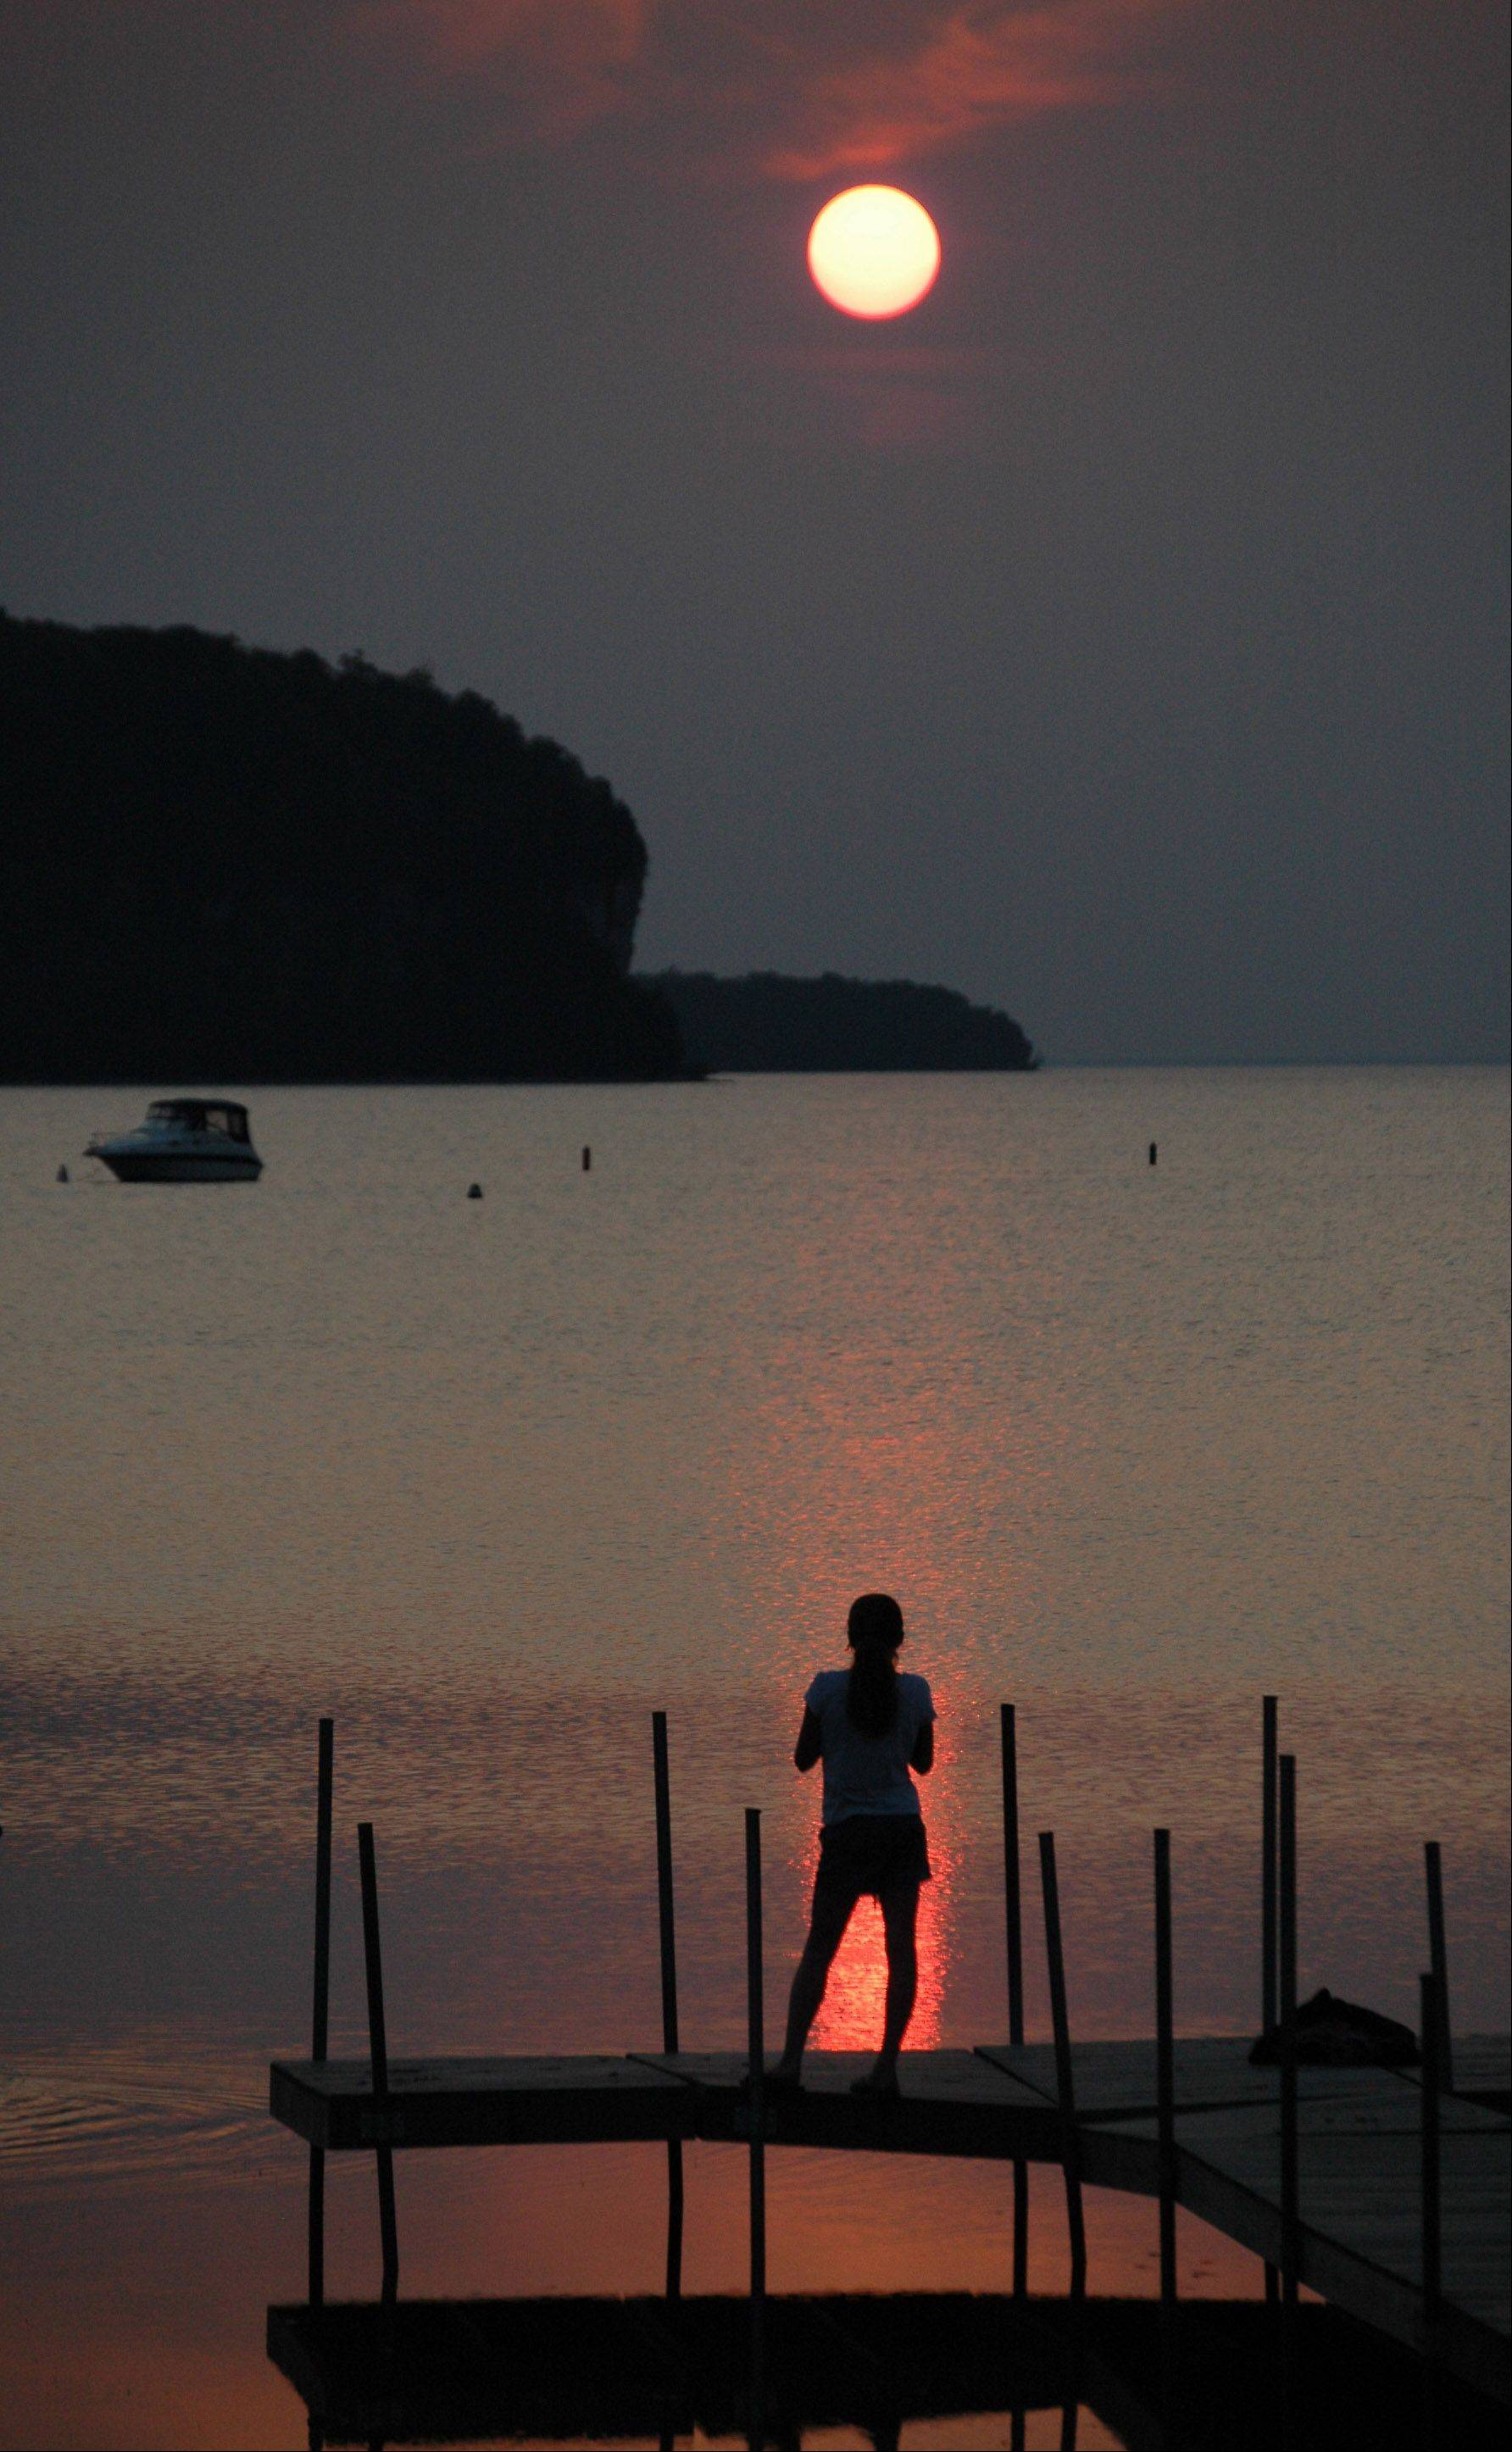 While enjoying a summer walk along Eagle Harbor in Ephraim, Wisconsin, we noticed this girl momentarily silhouetted by light from the setting sun as clouds rolled in for the evening.